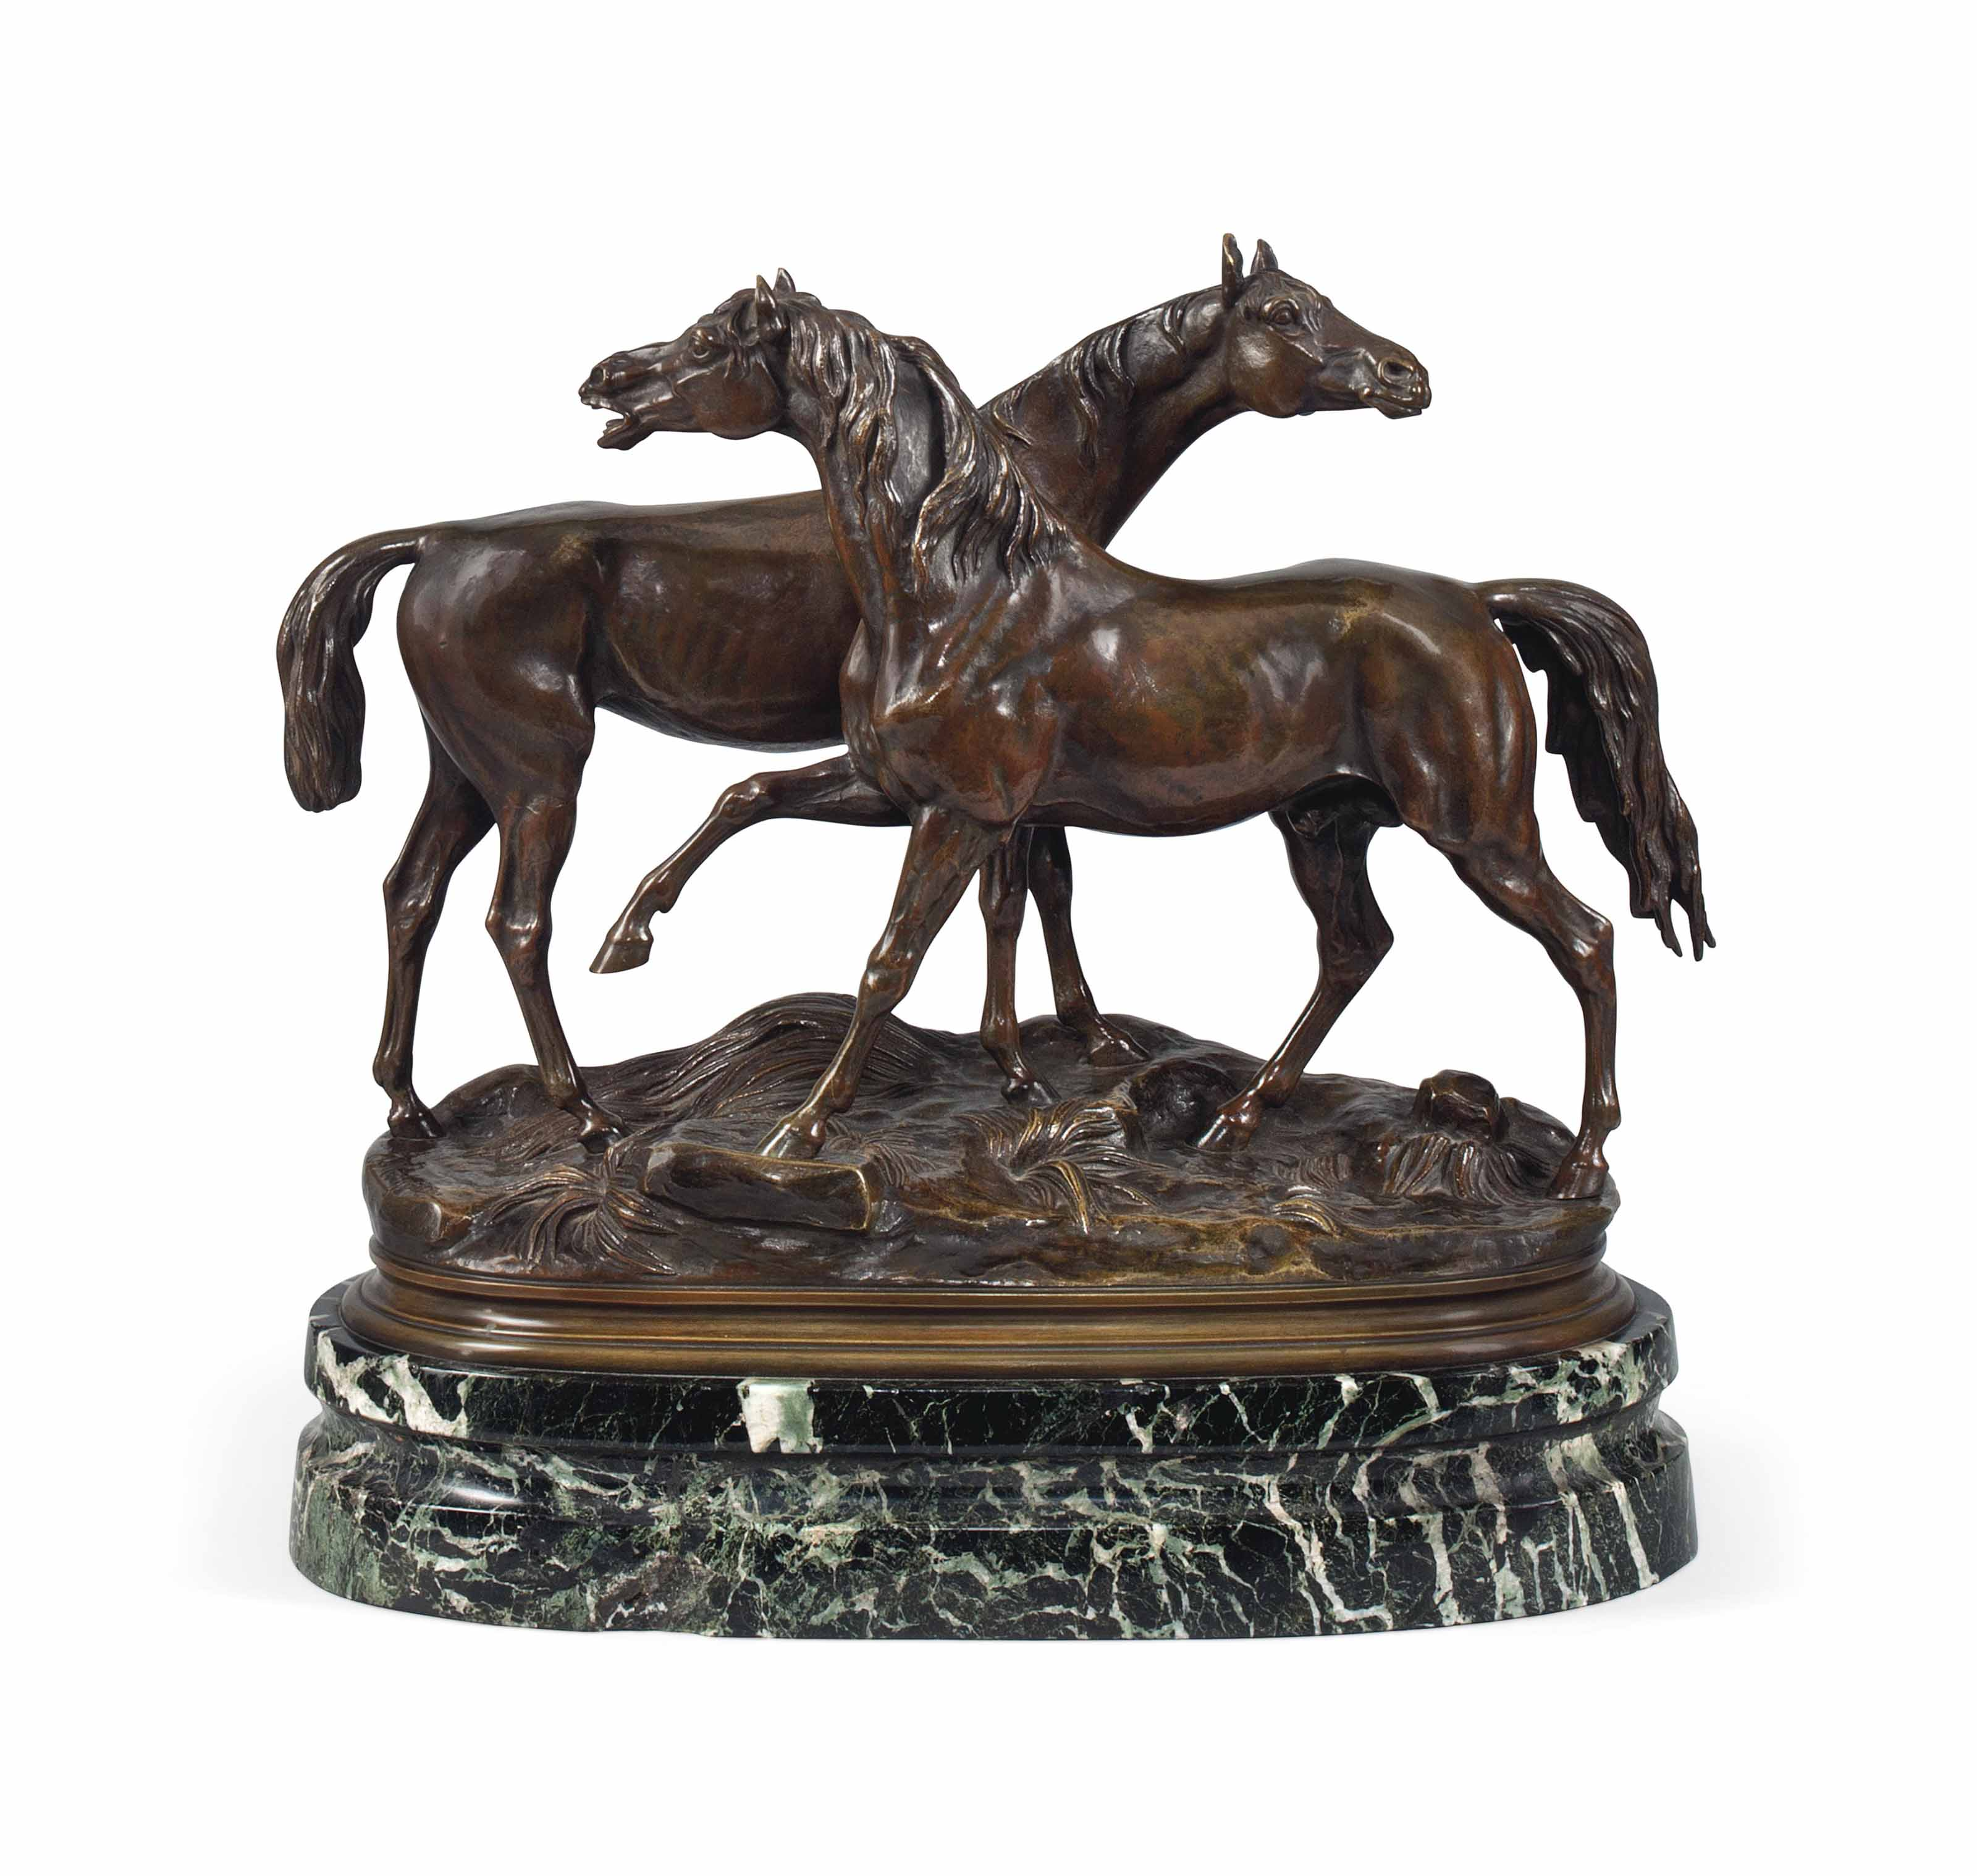 A FRENCH BRONZE GROUP OF TWO HORSES